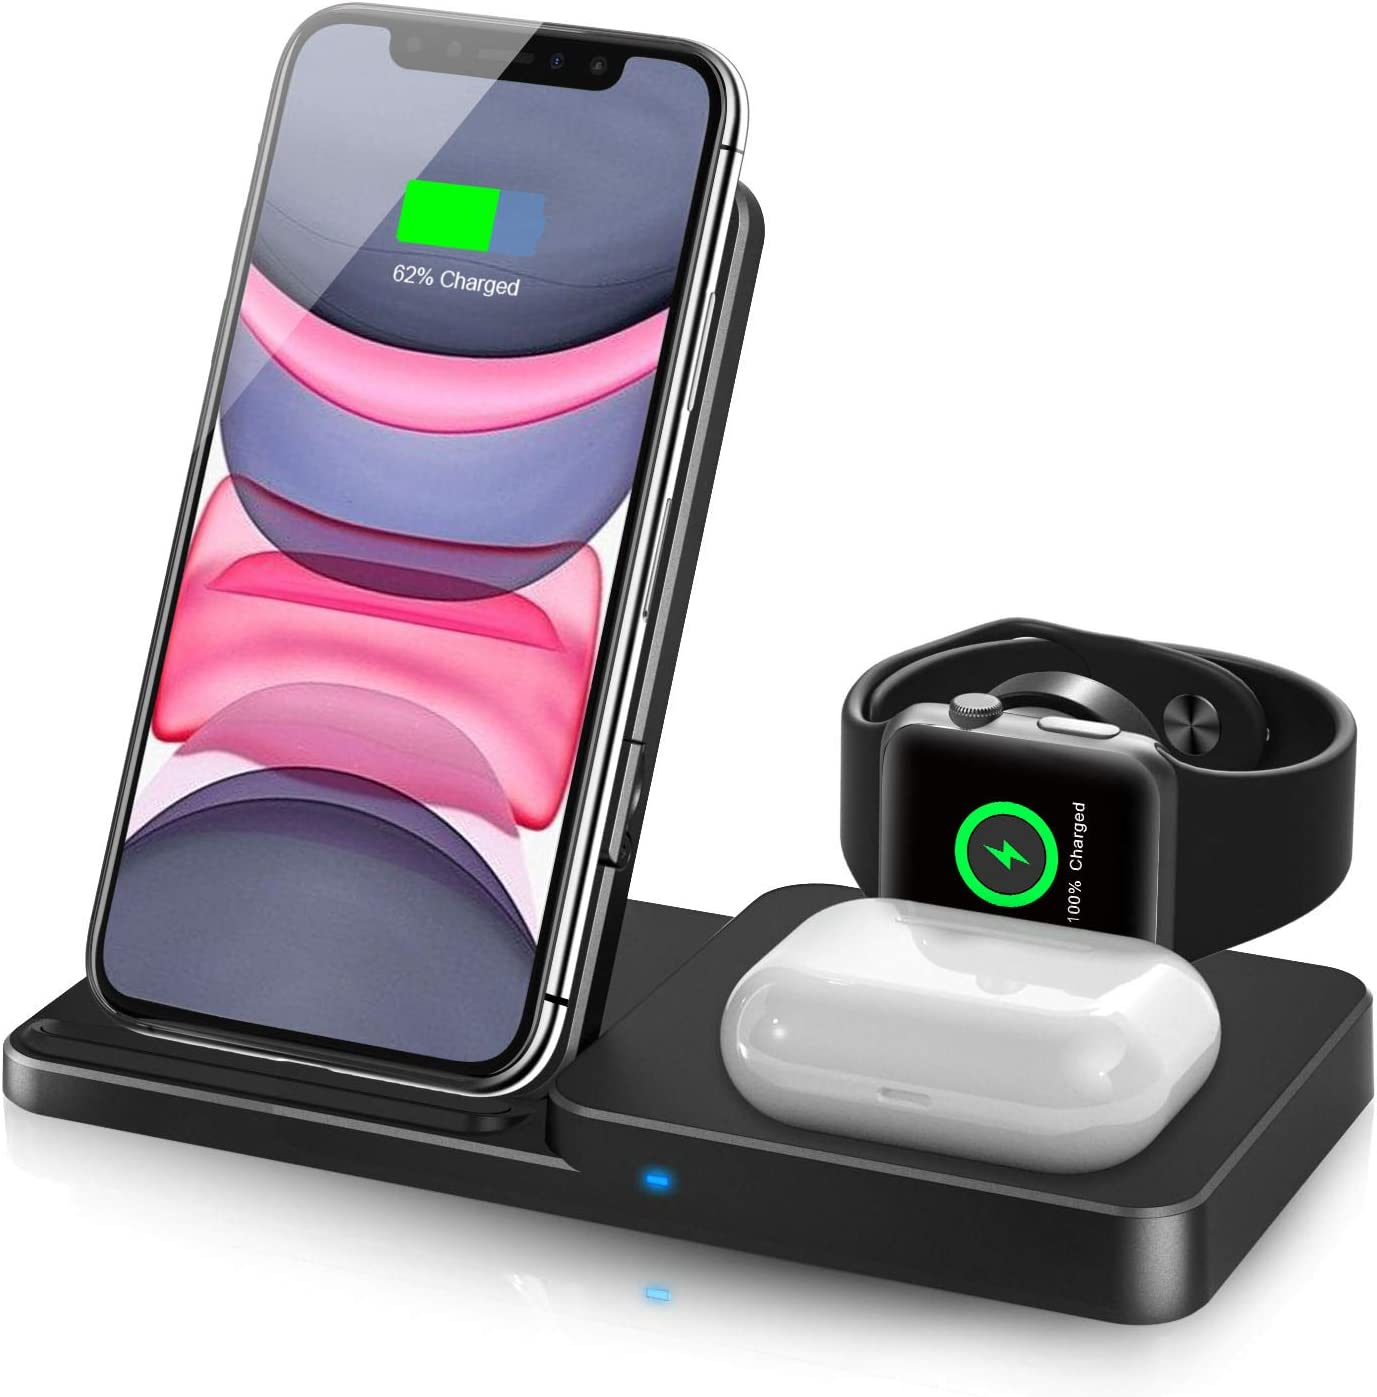 Wireless Charger, 3 in 1 Qi-Certified Fast Wireless Charging Station for AirPods/Apple Watch Series/ iPhone 12/11/11 pro/11 Pro Max/XS/XS Max/XR/8/8 Plus/SE,Adjust Wireless Charging Stand for Samsung